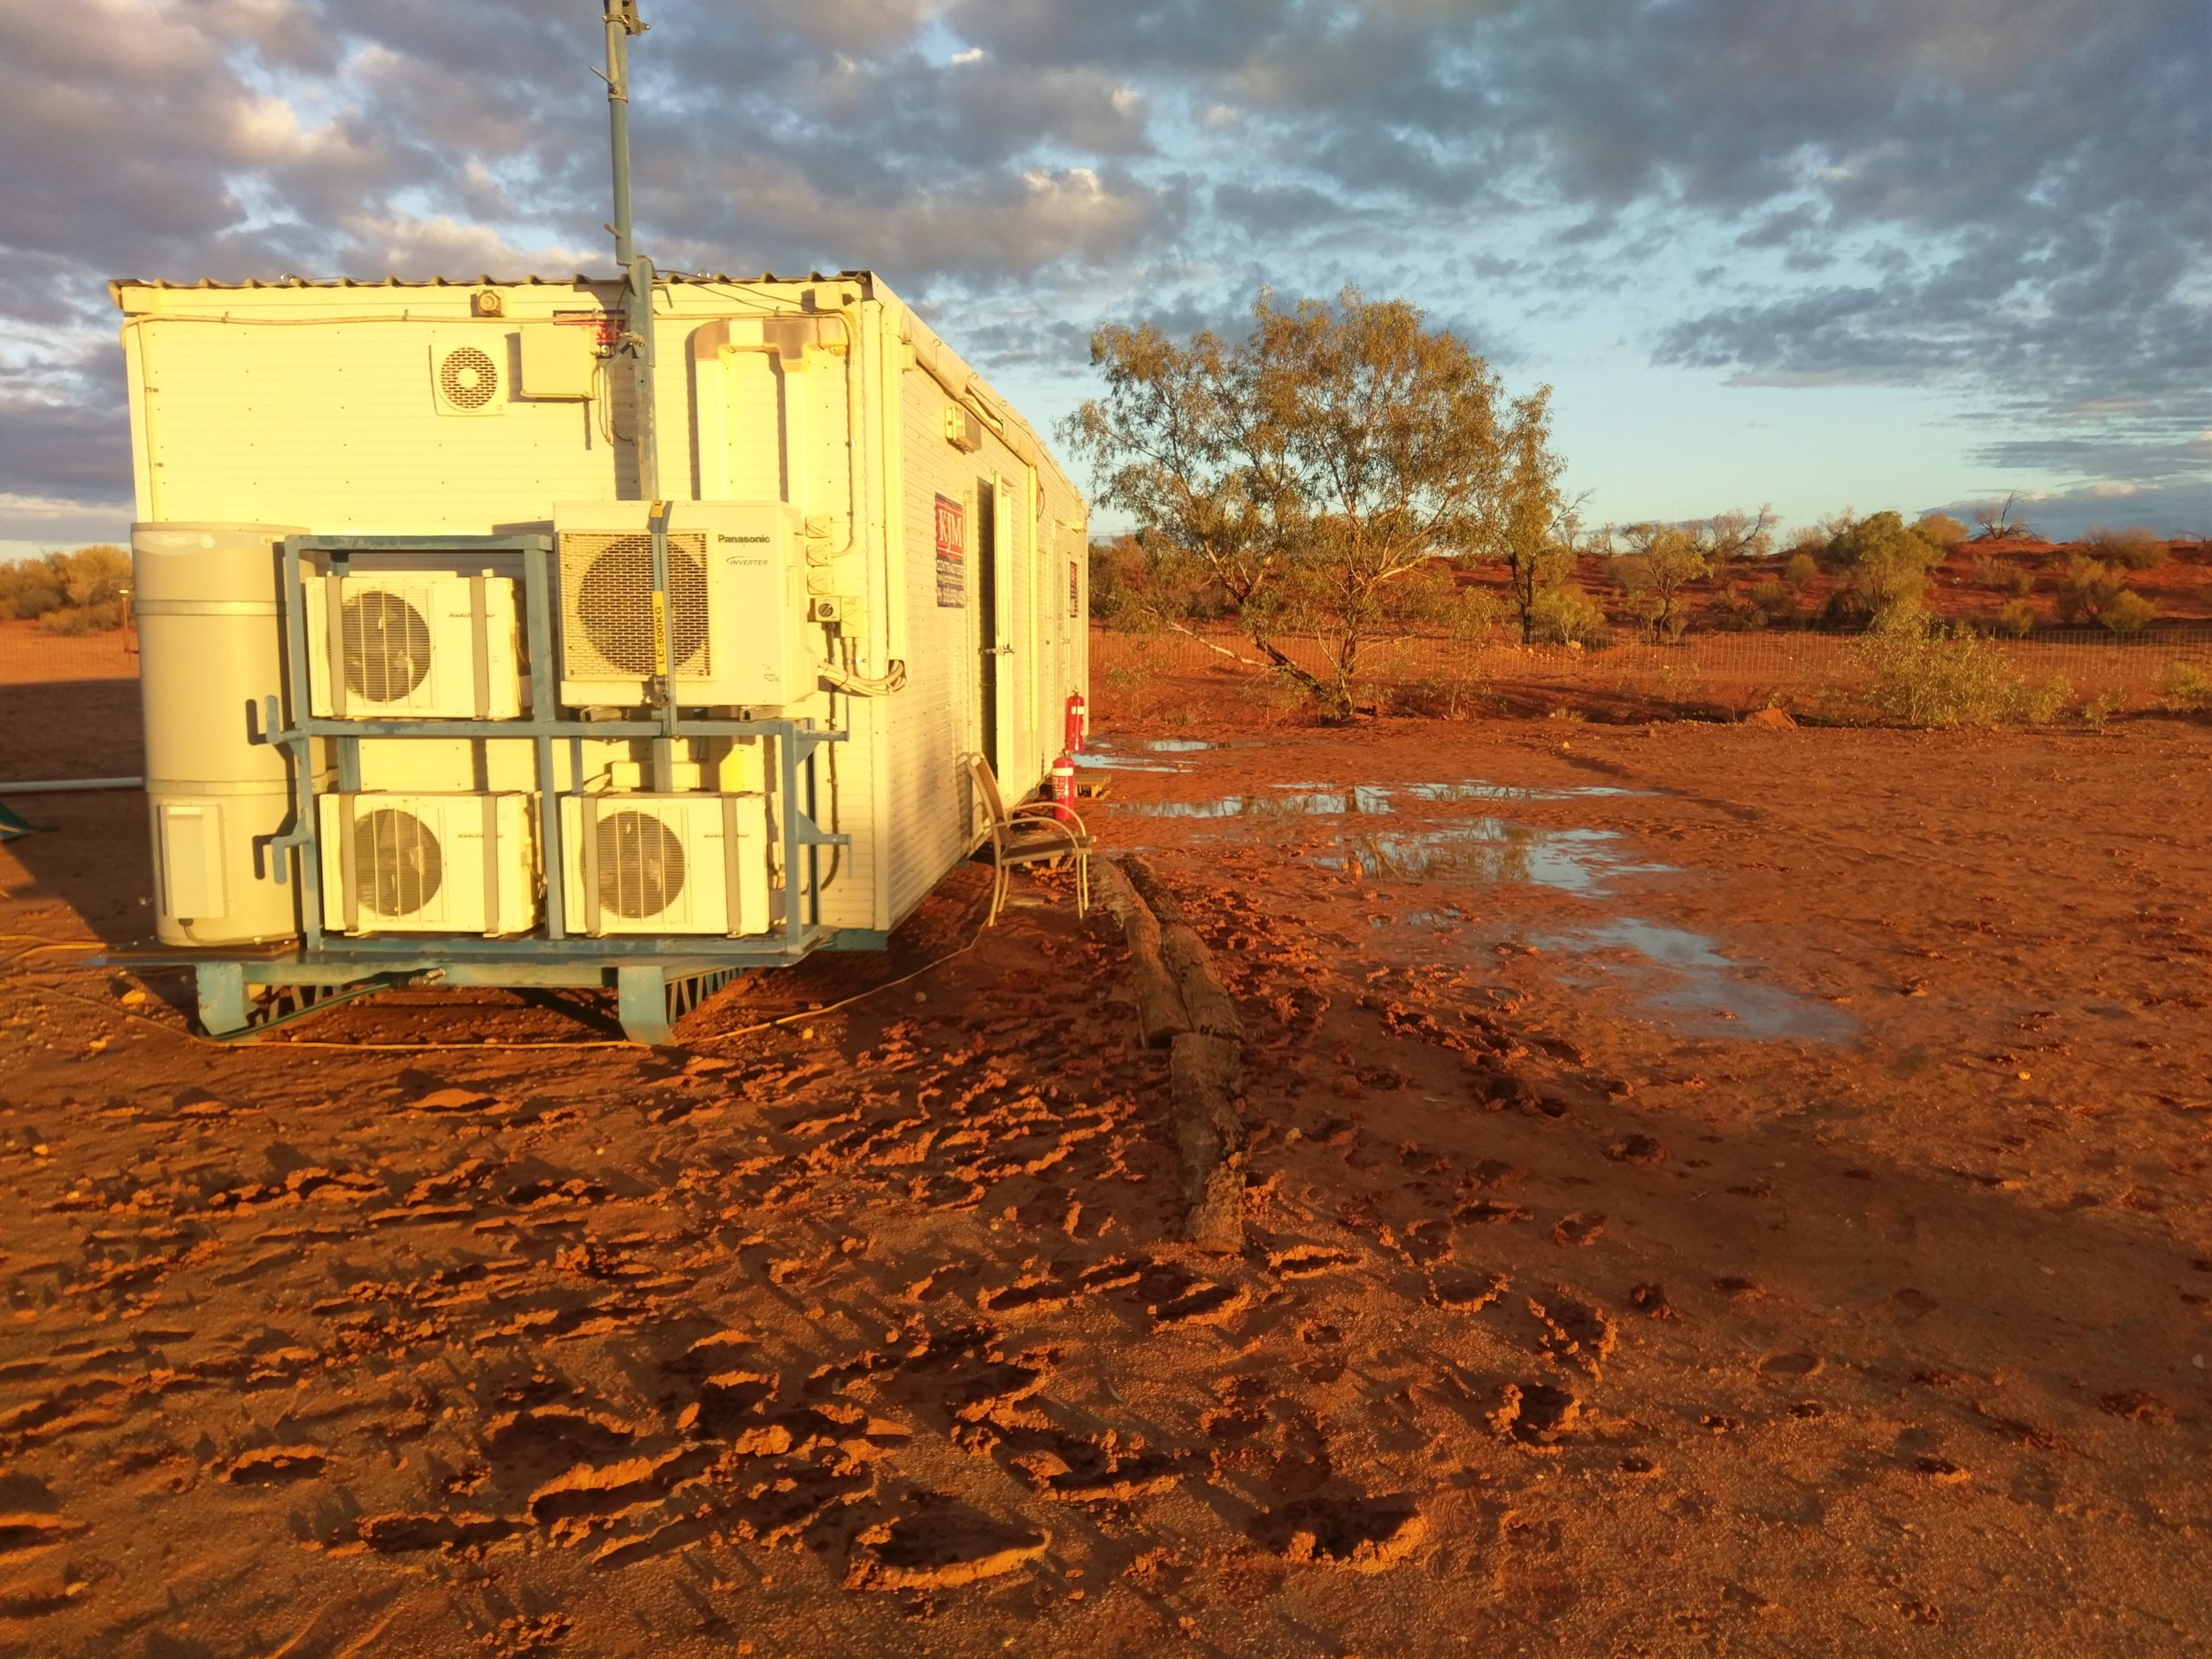 20ml of rain made it difficult to use the shower/toilet